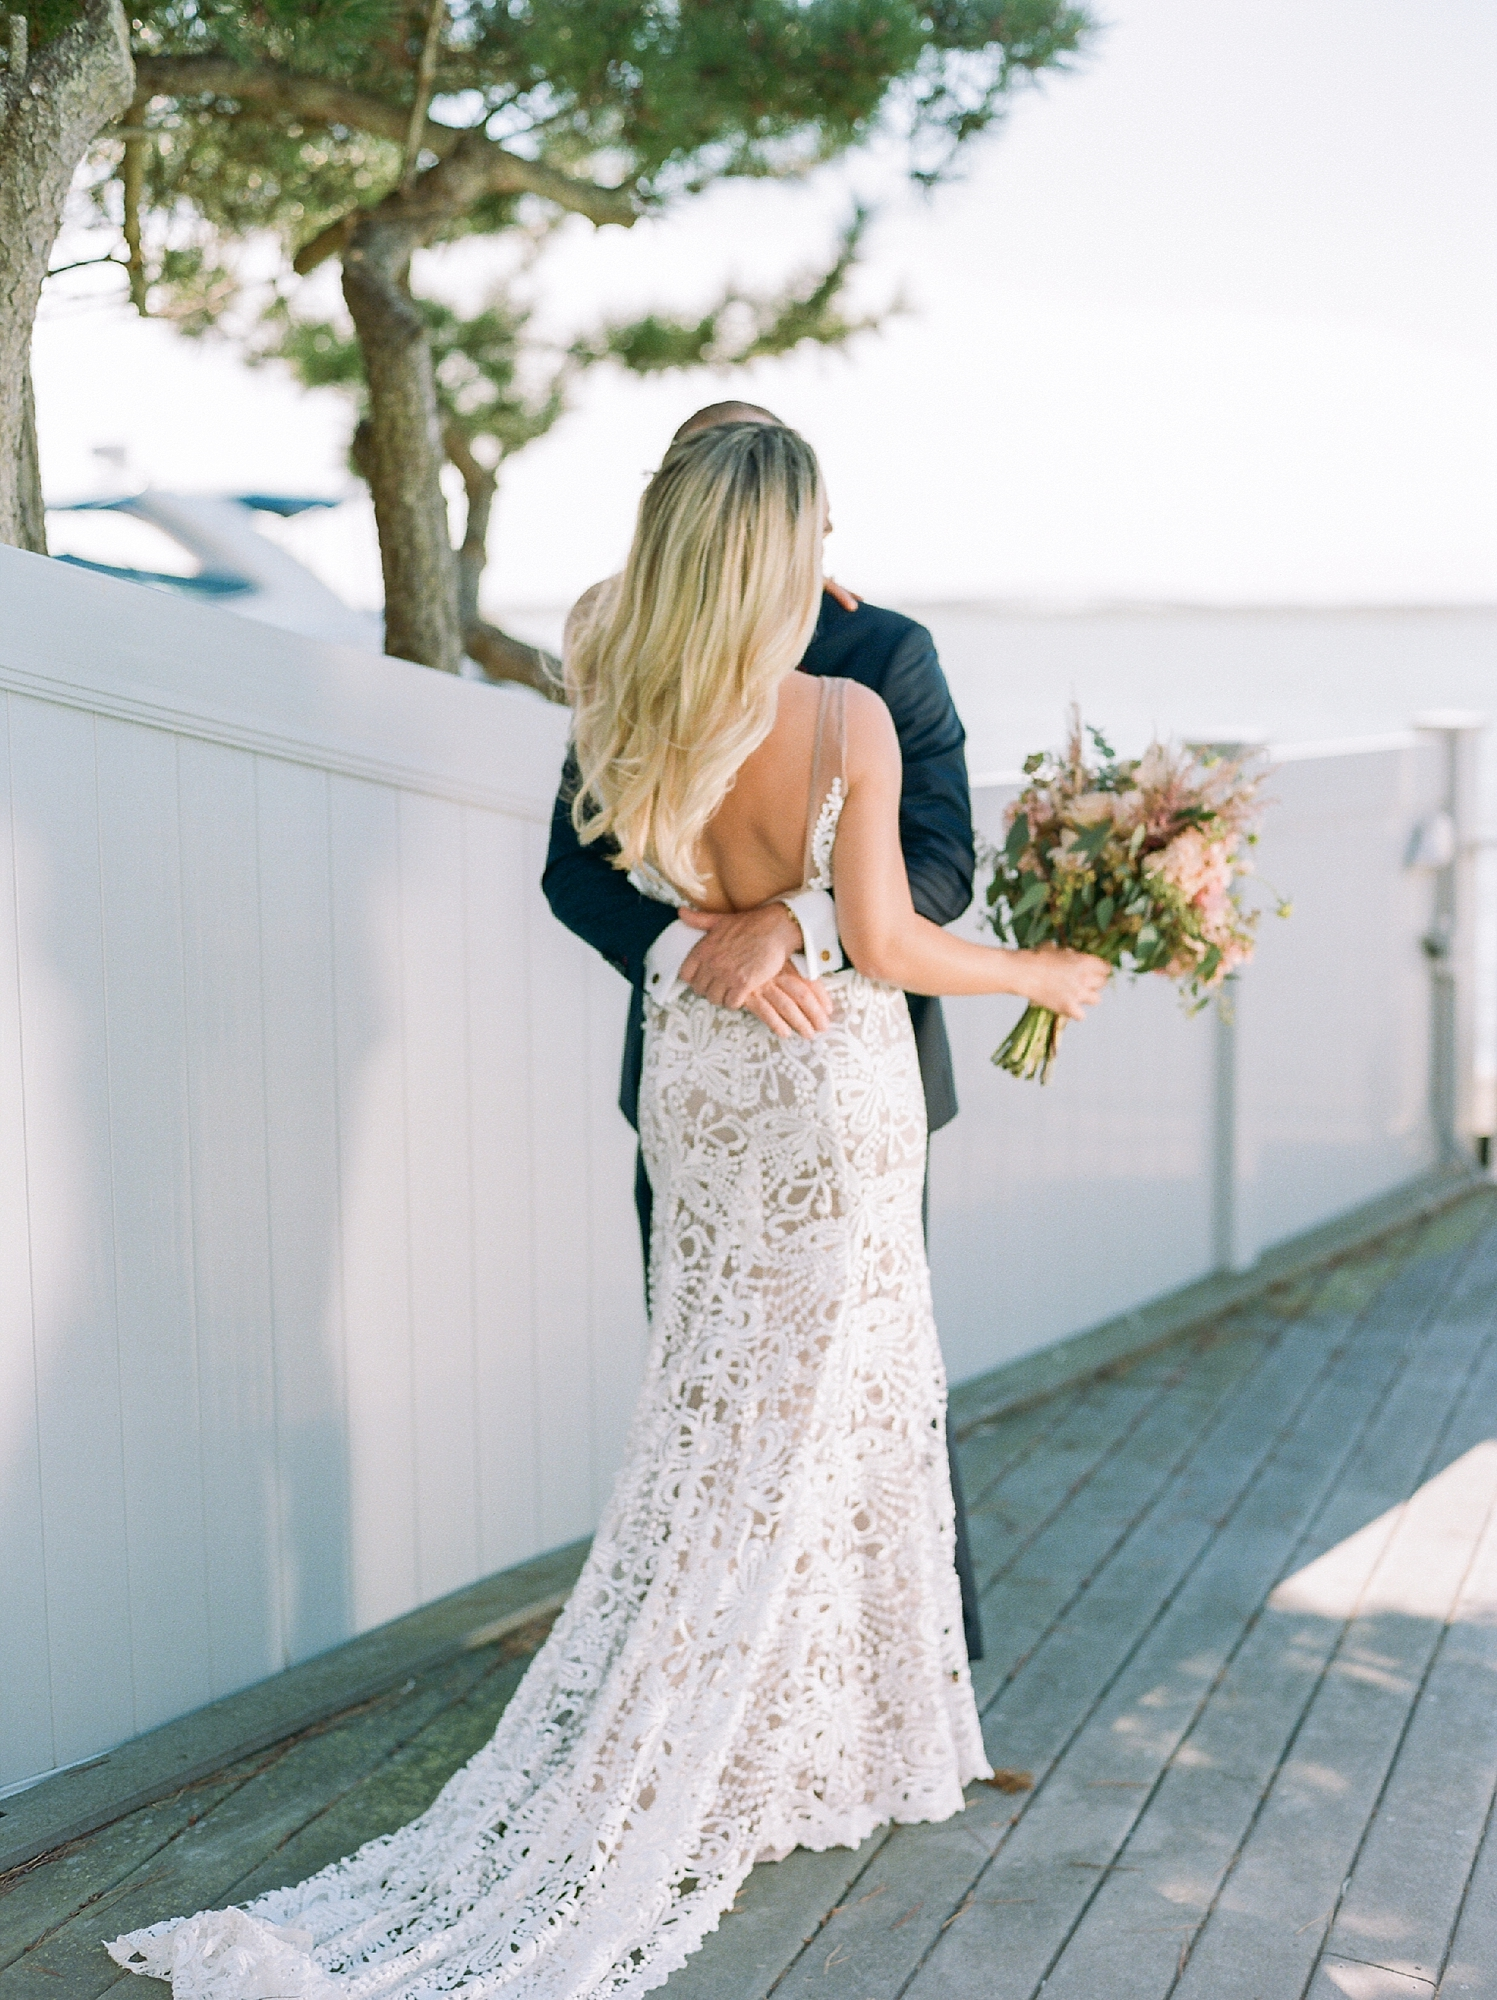 Stylish and Free Spirited Wedding Photography at One Atlantic in Atlantic City NJ by Magdalena Studios 0028 1